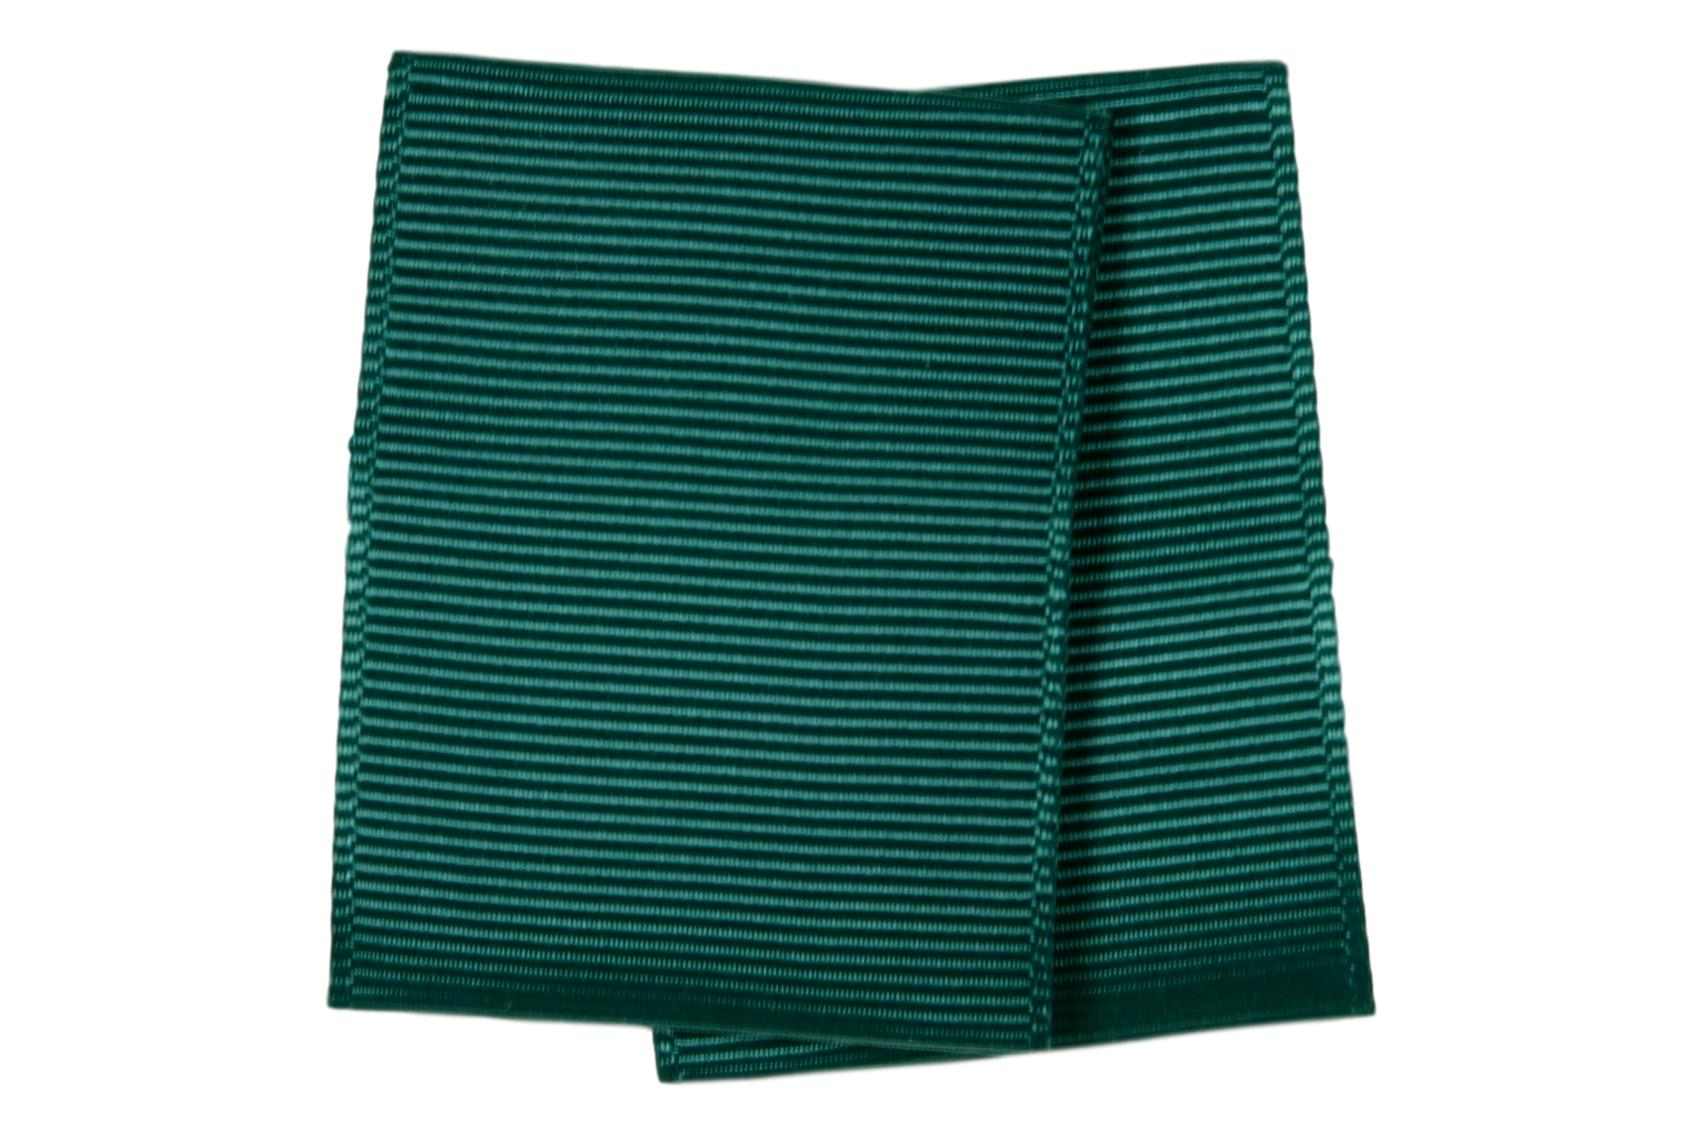 Pair of Forest Green Shoulder Loops (Explorer Positions)